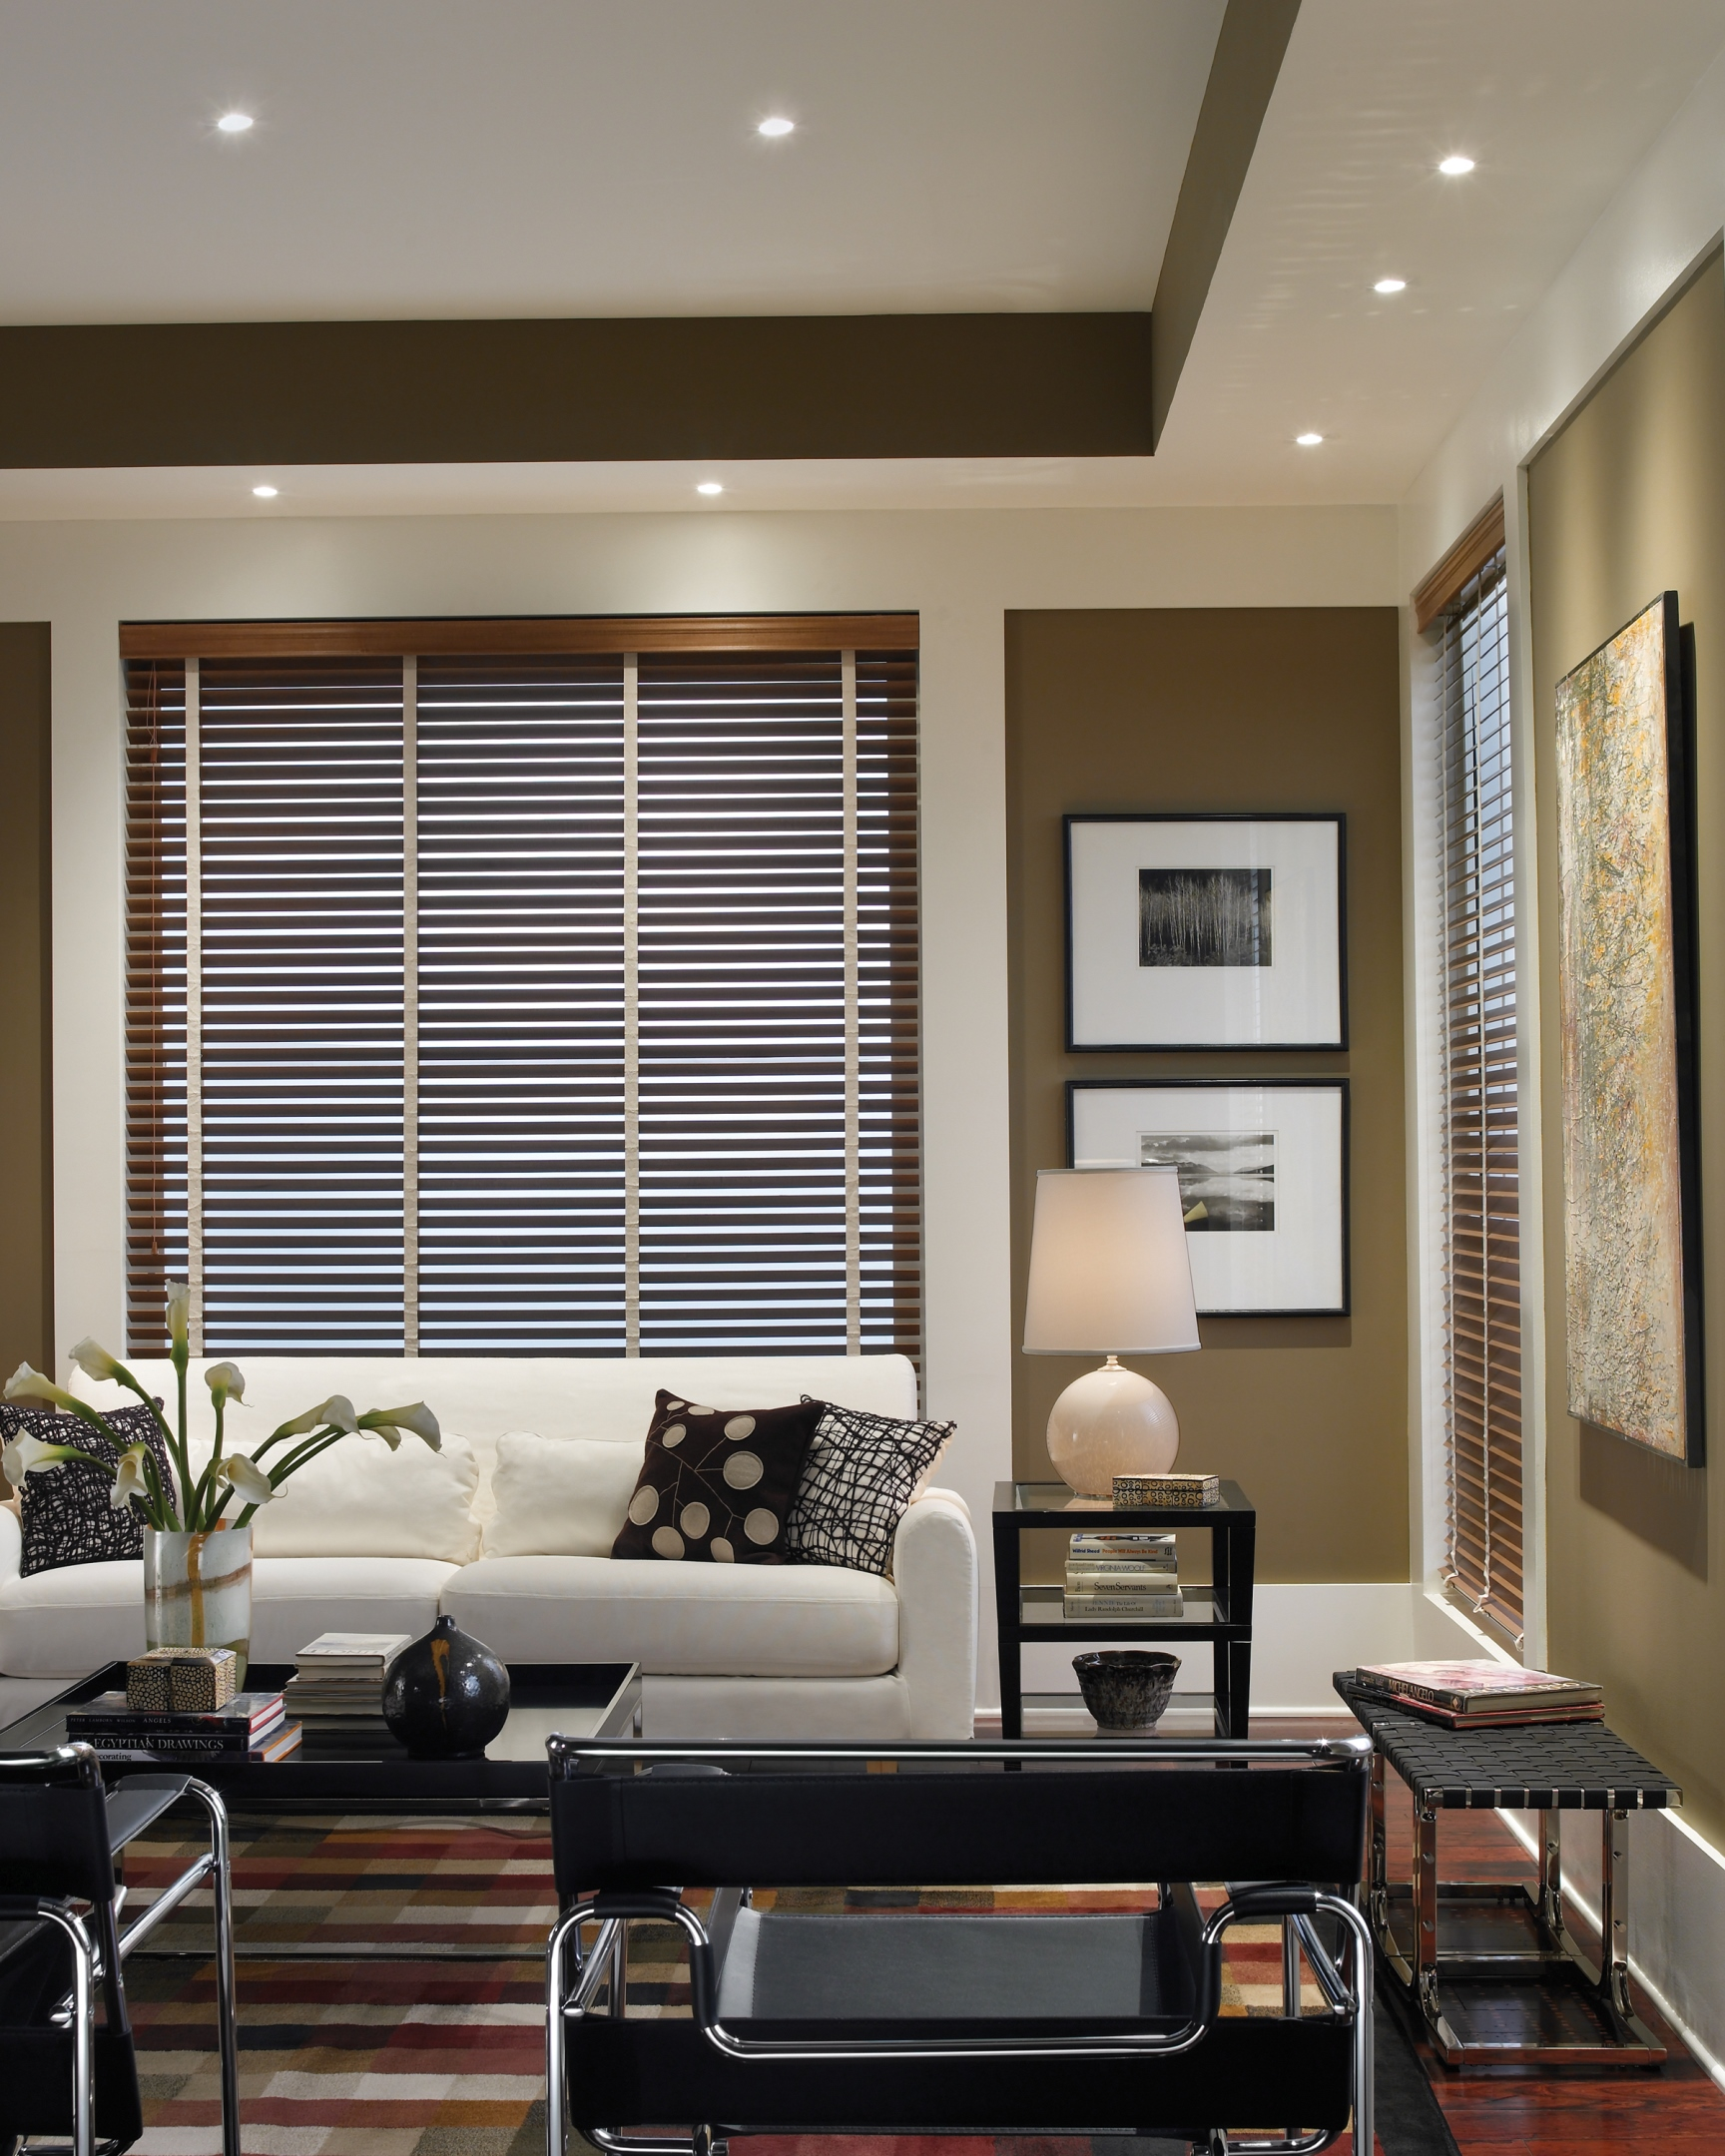 Recessed Lighting In Living Room: How To Choose Recessed Lighting